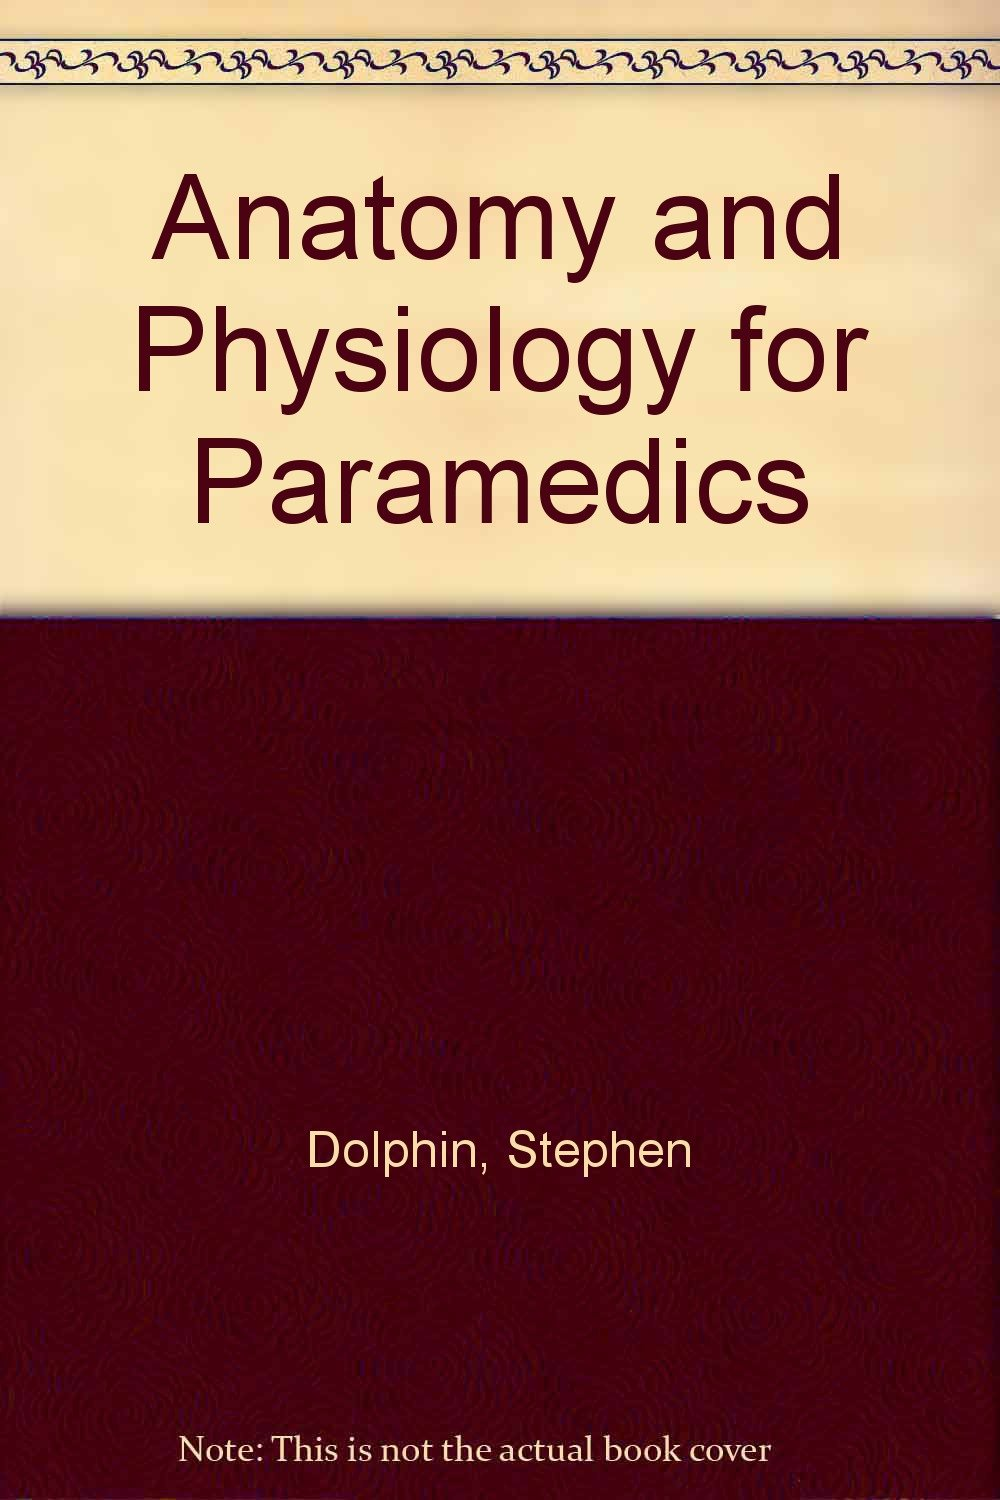 Buy Anatomy and Physiology for Paramedics Book Online at Low Prices ...